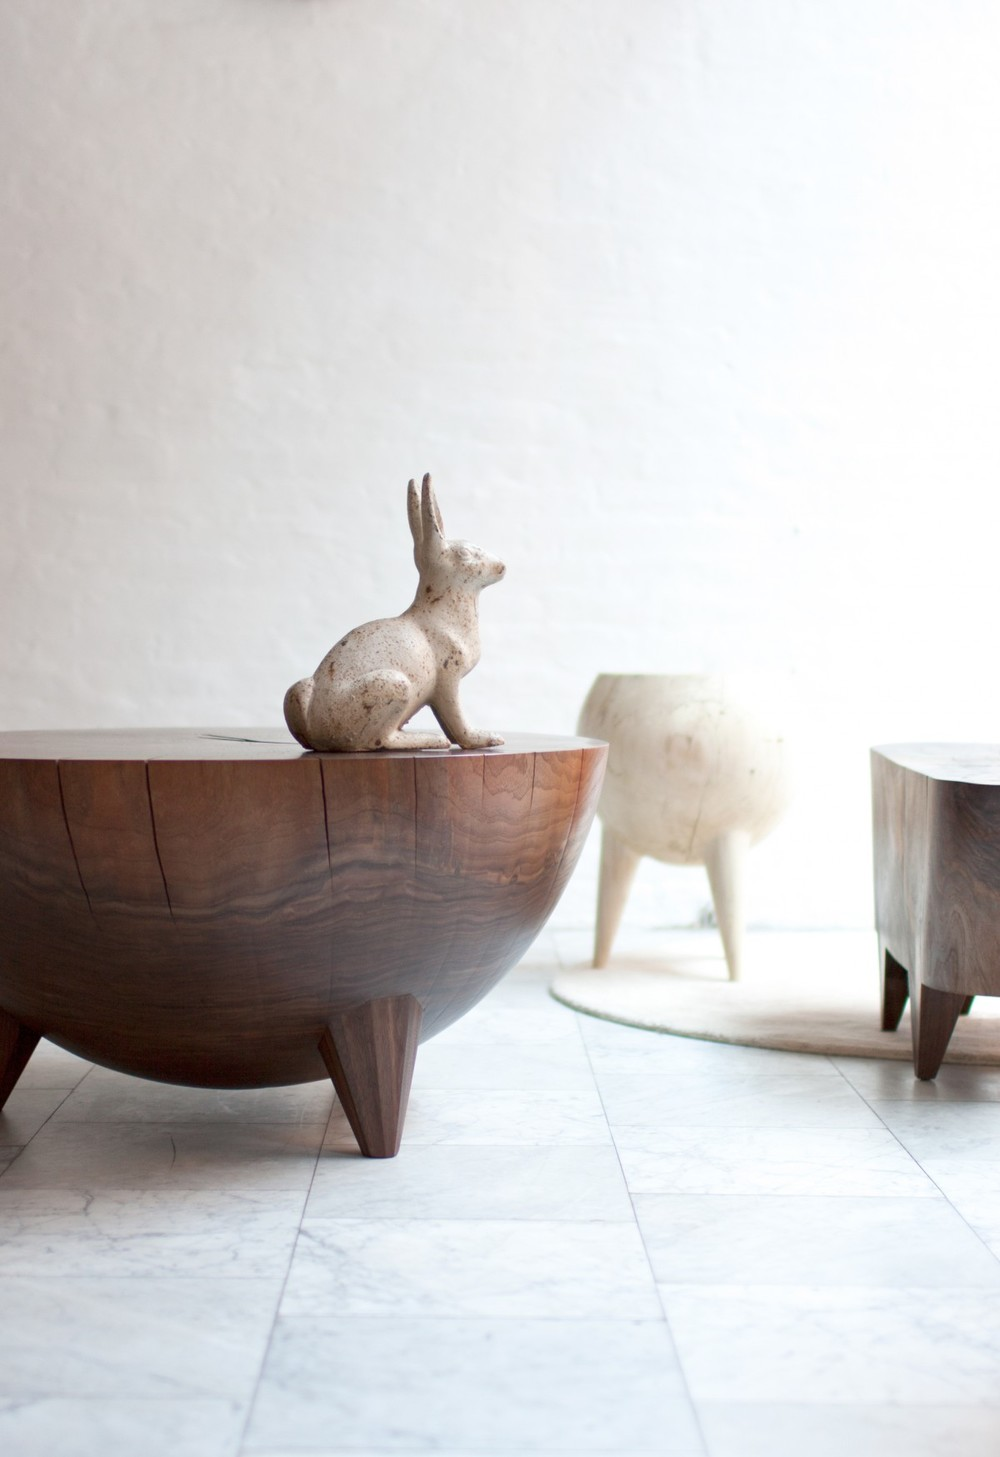 Wooden Kieran Stump Tables from Kieran Kinsella